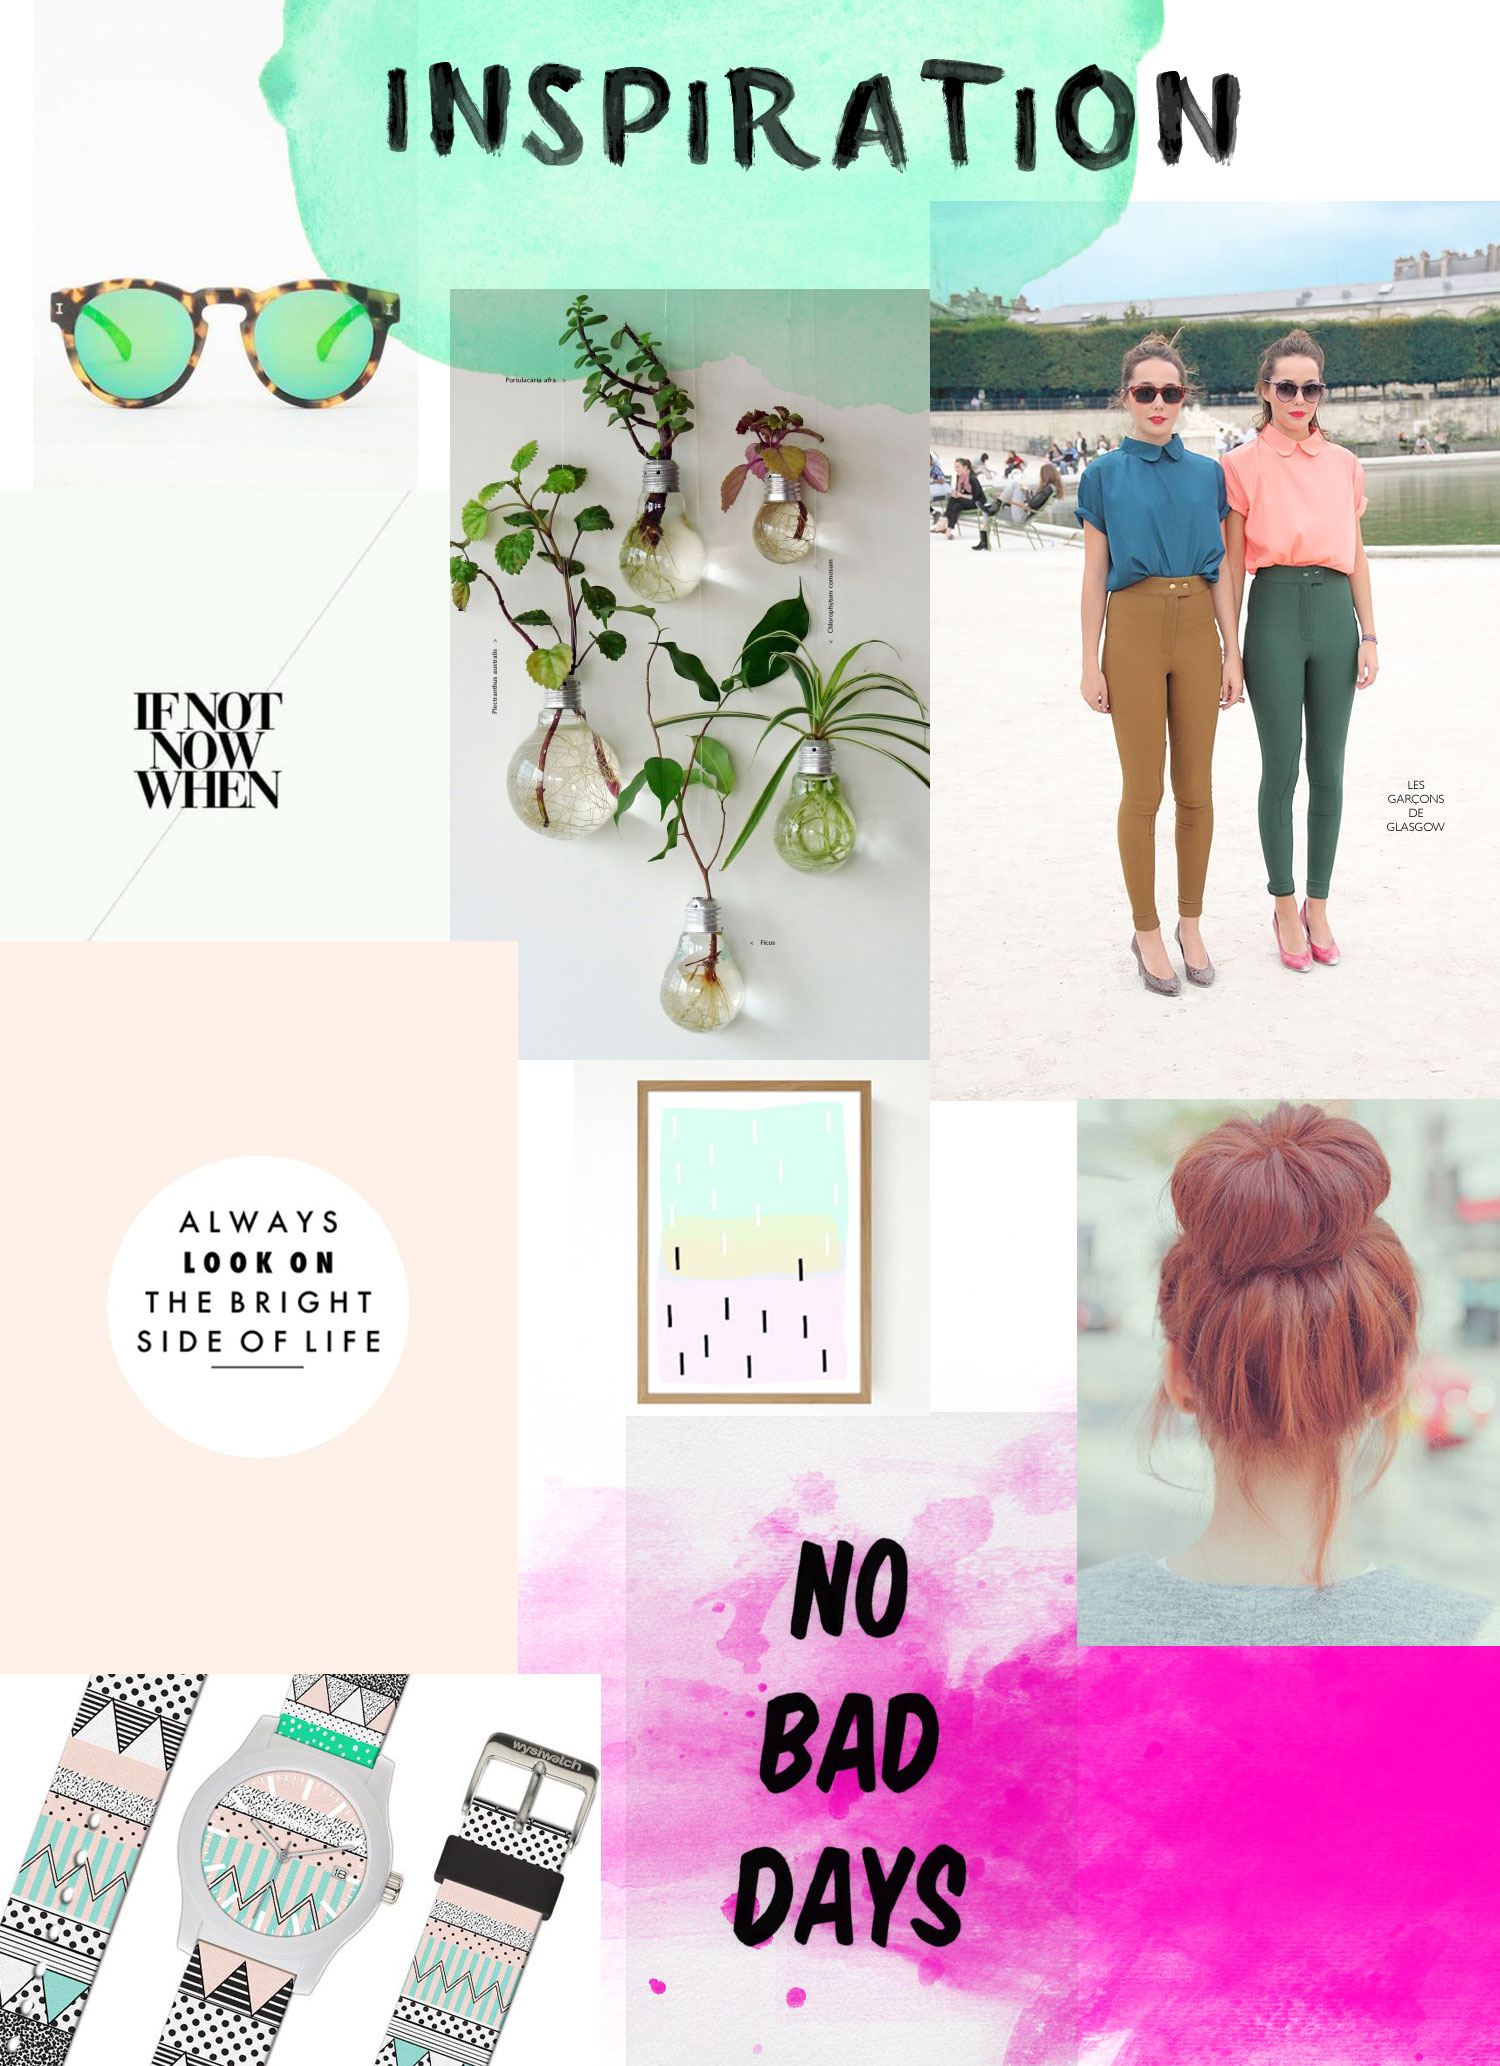 Fashion Designer Watercolour Pinterest Moodboard Trend Wysiwatch Watch Sunglasses Electric Urban Outfitters Topshop Creative Vasare Nar Social Media Marketing Style Collage Layout Magazine Spread Mixed Media Vasare Nar Art Fashion Design Blog